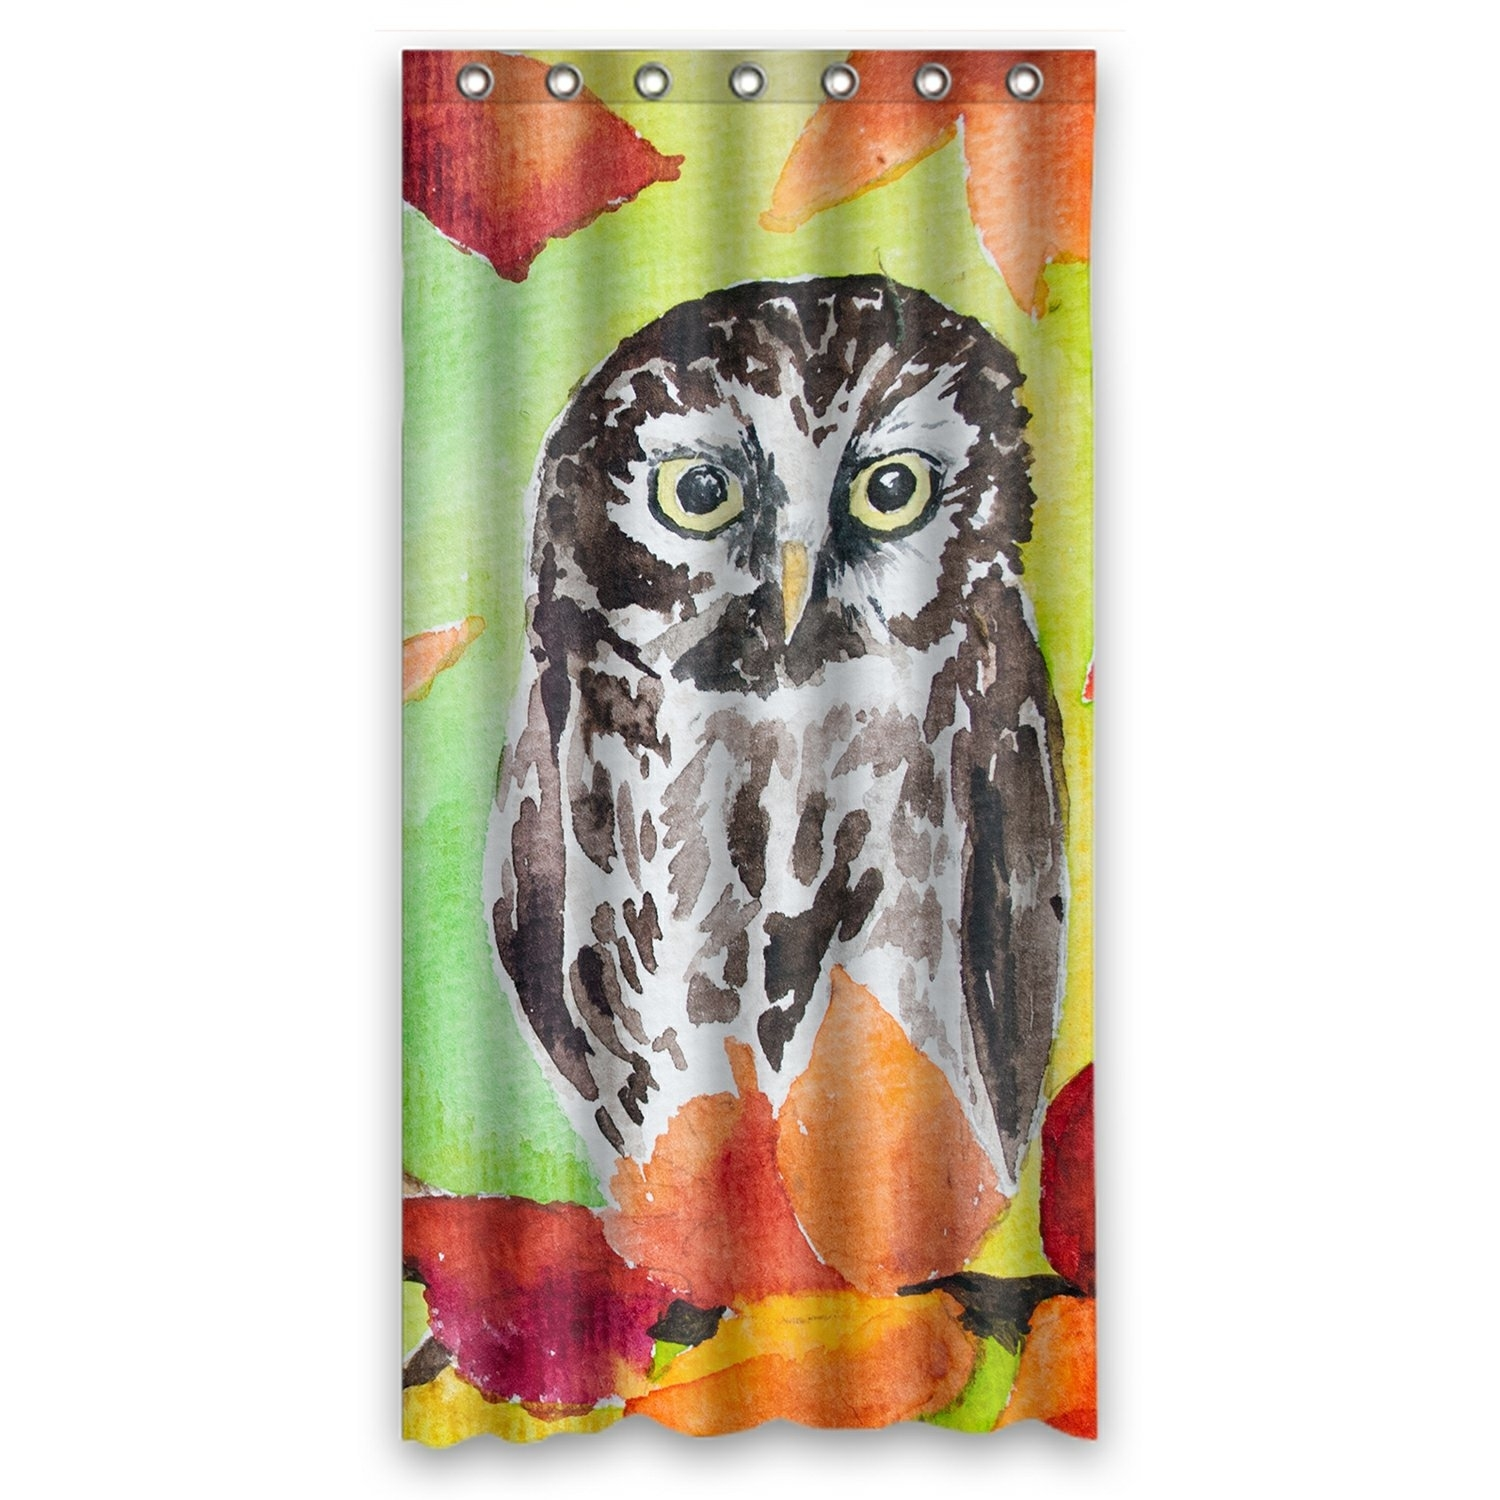 Oil Painting Landscape Shower Curtain, Owl Sitting in the Autumn Forest Tree Shower Curtain 36x72 inch